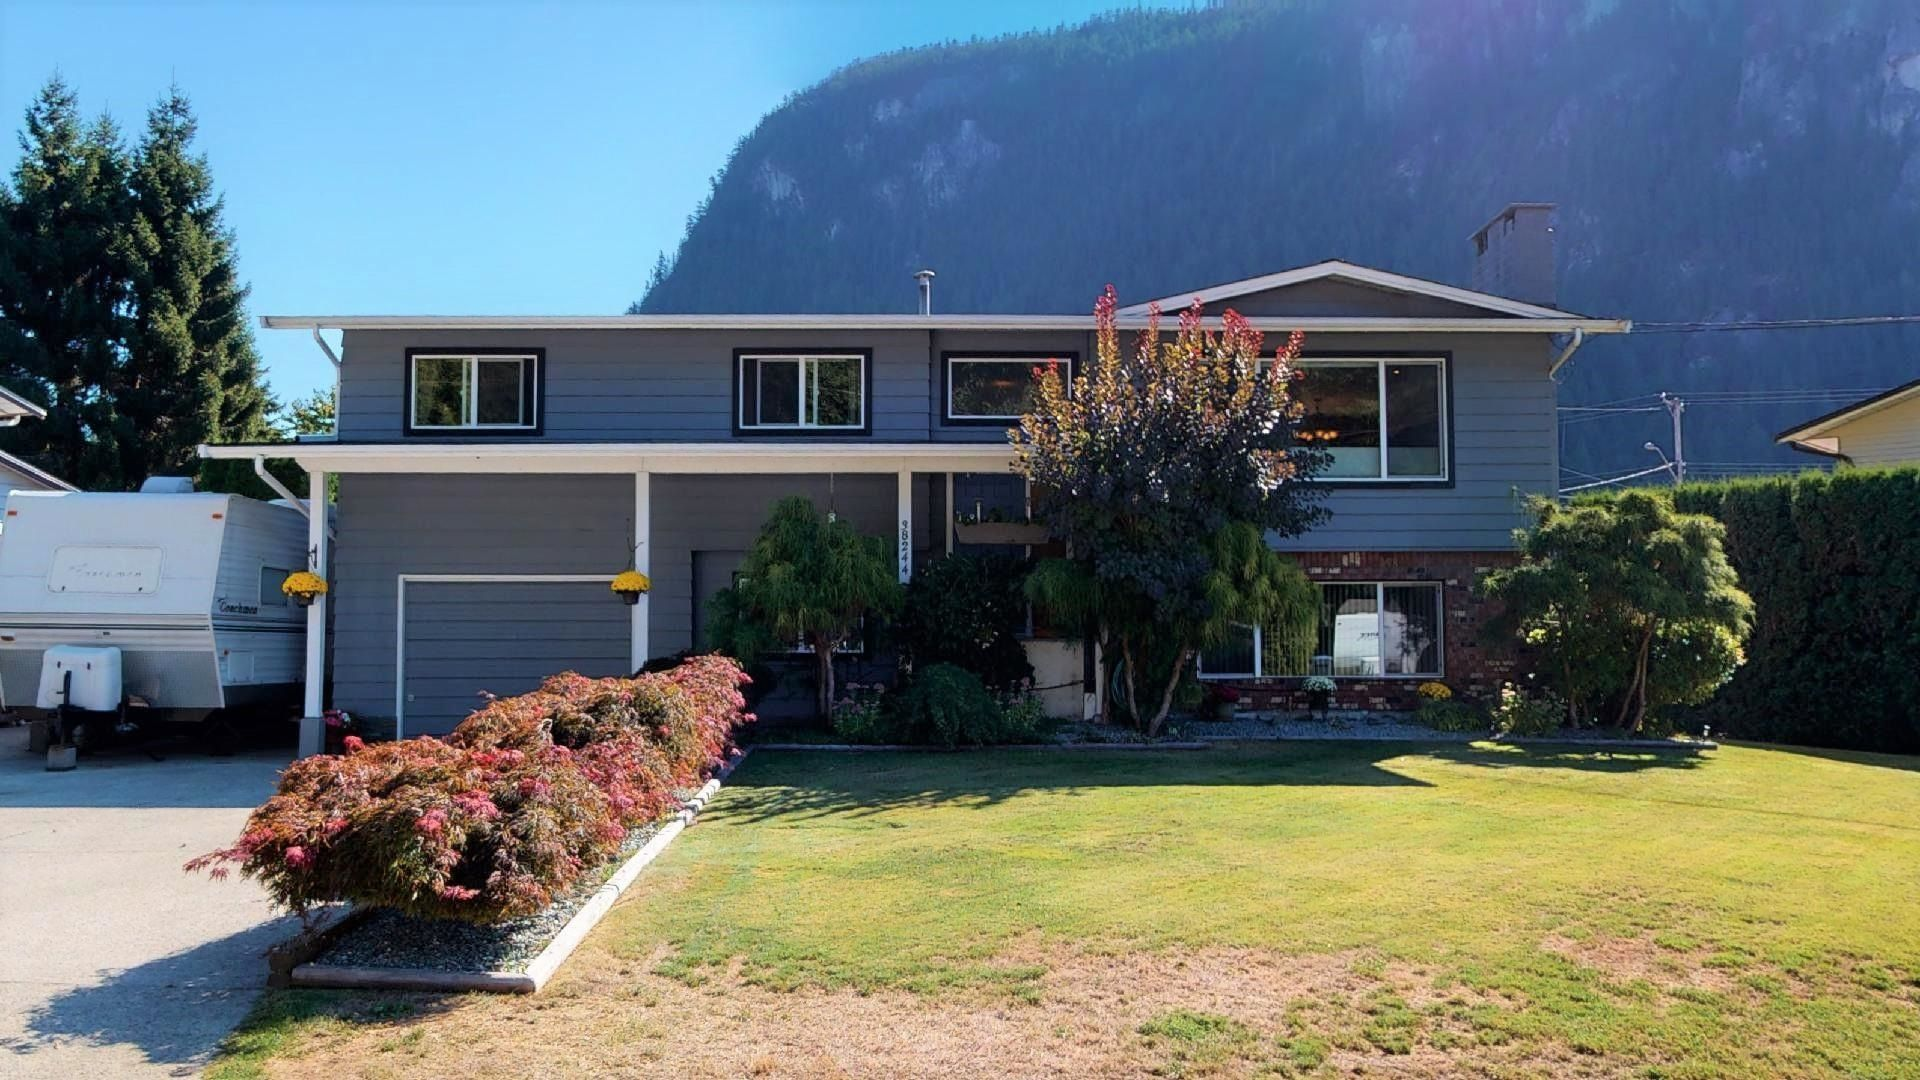 Main Photo: 38244 JUNIPER Crescent in Squamish: Valleycliffe House for sale : MLS®# R2616219